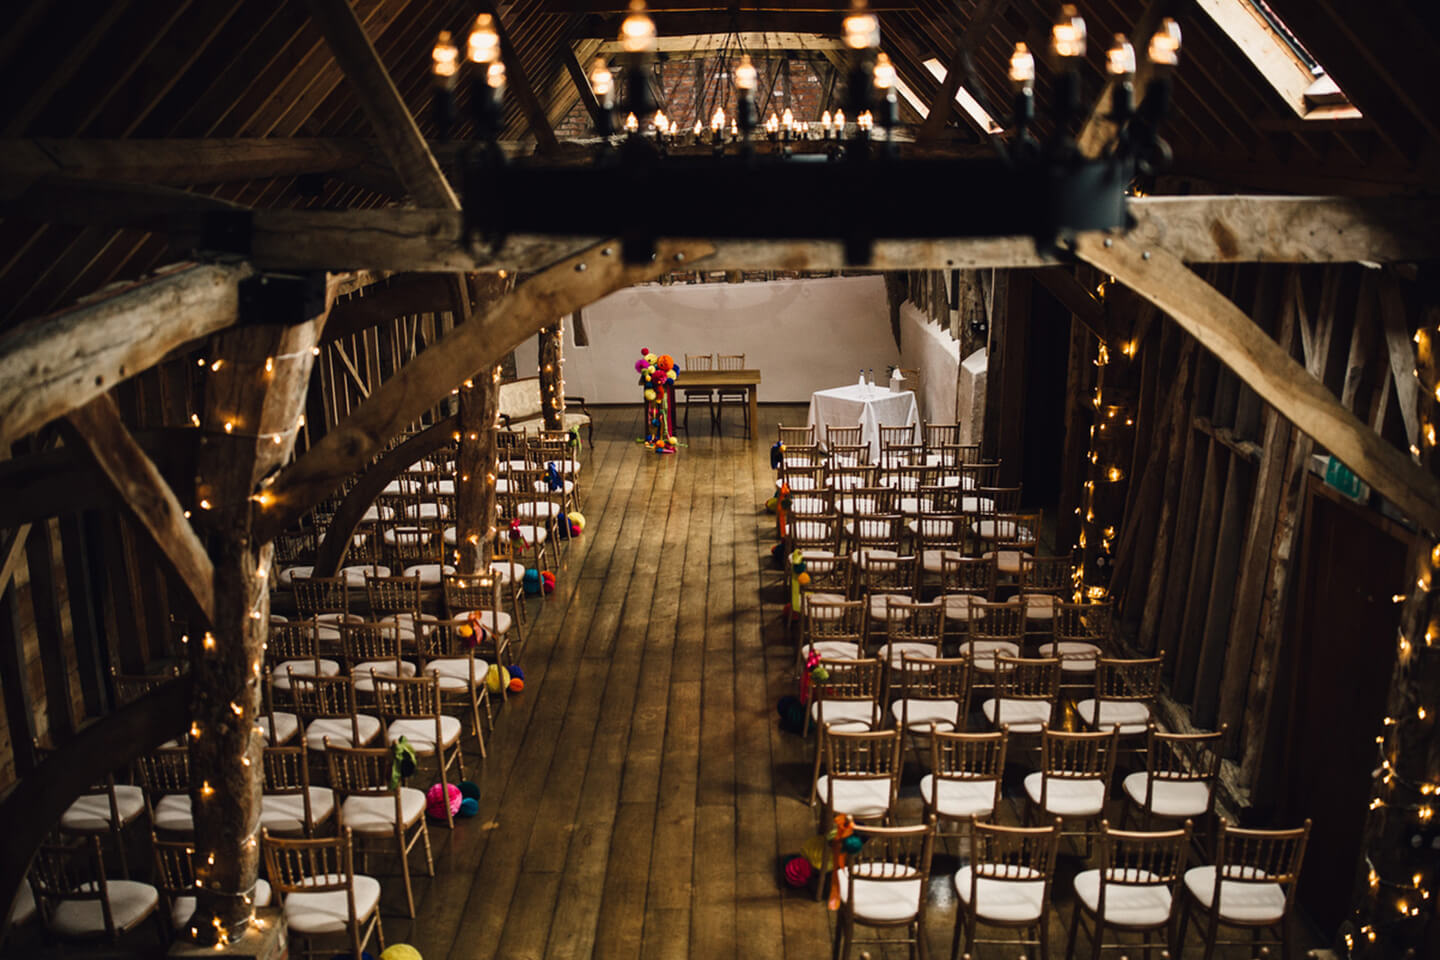 The Rickety Barn is set up for a festival themed wedding ceremony